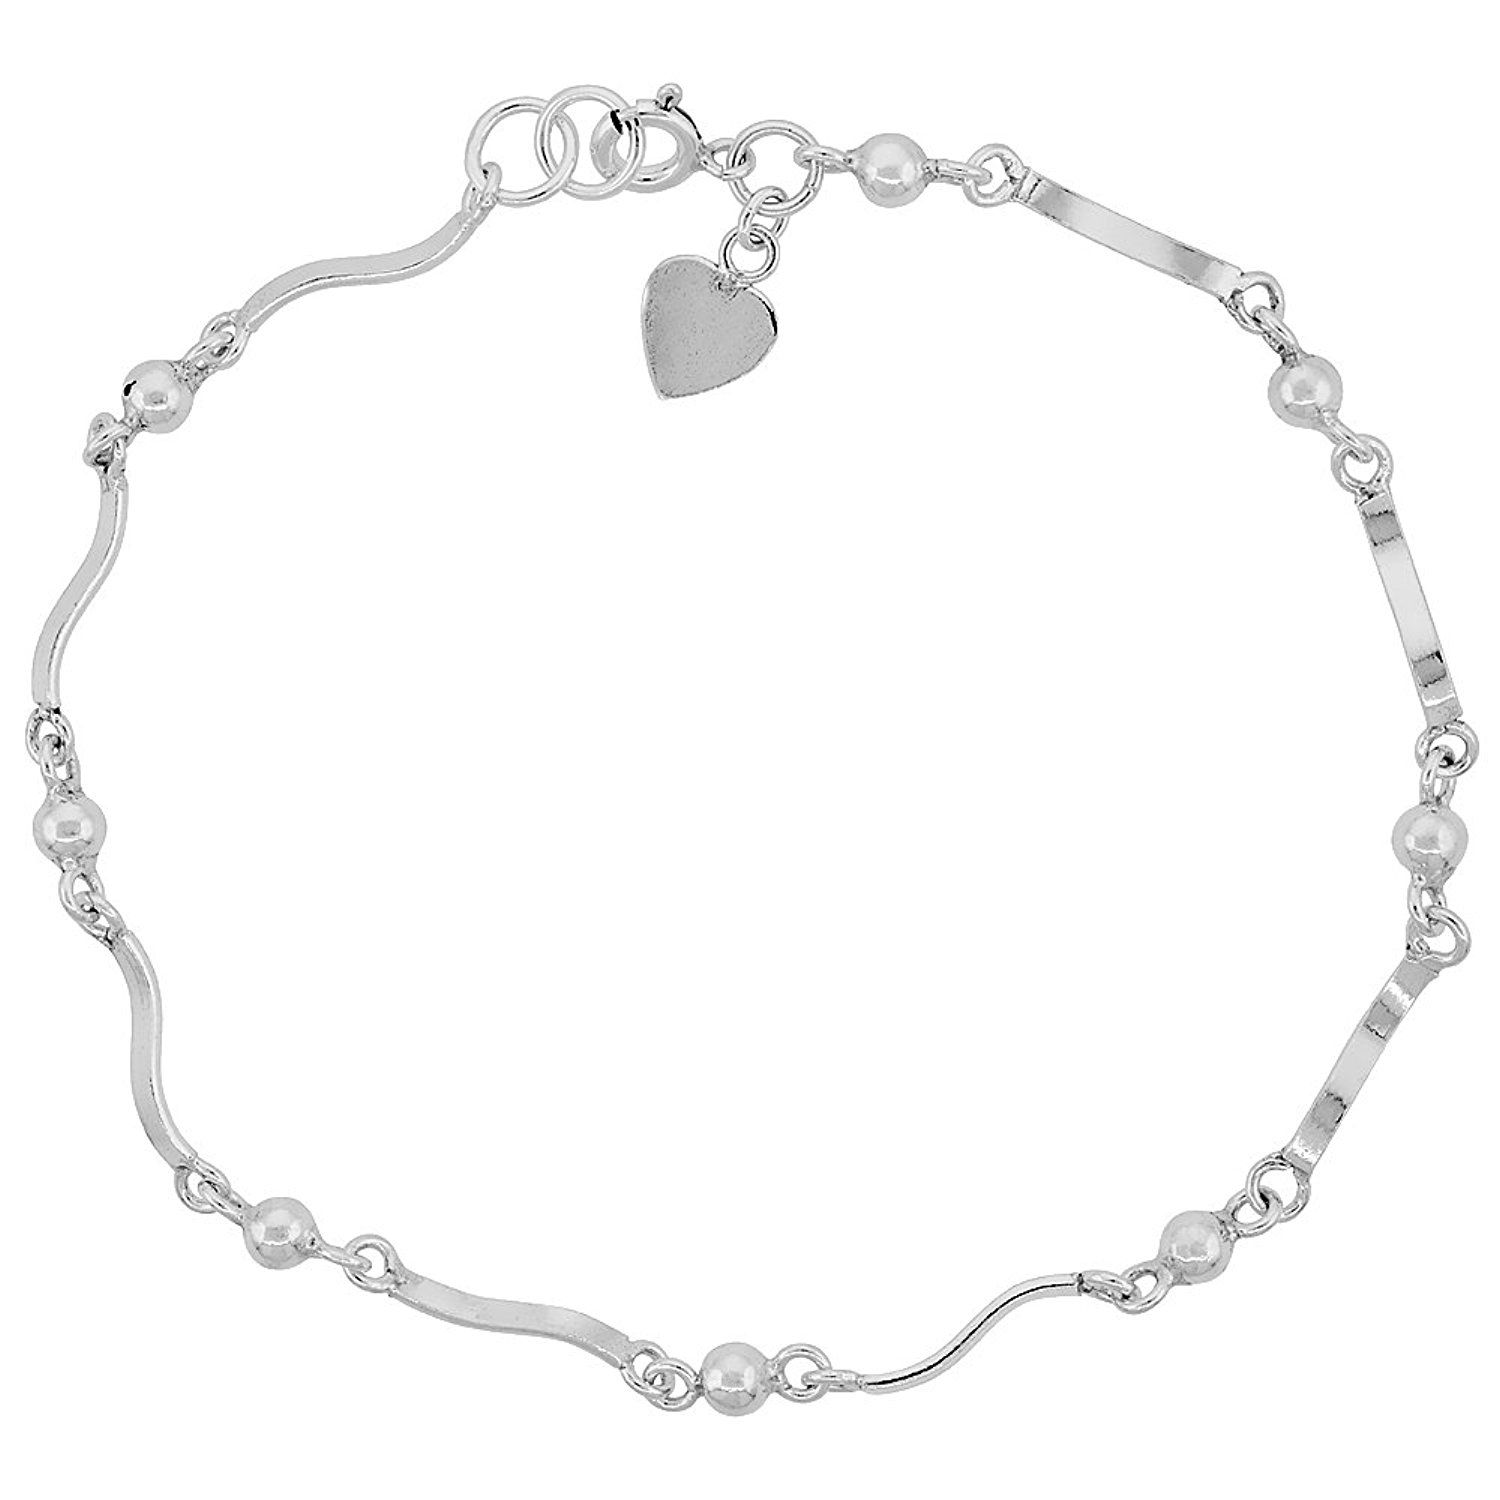 Sterling Silver Anklet With Hearts And Beads Fits 9 10 Inch Ankles You Can Find More Details Sterling Silver Anklet Silver Anklets Silver Ankle Bracelet